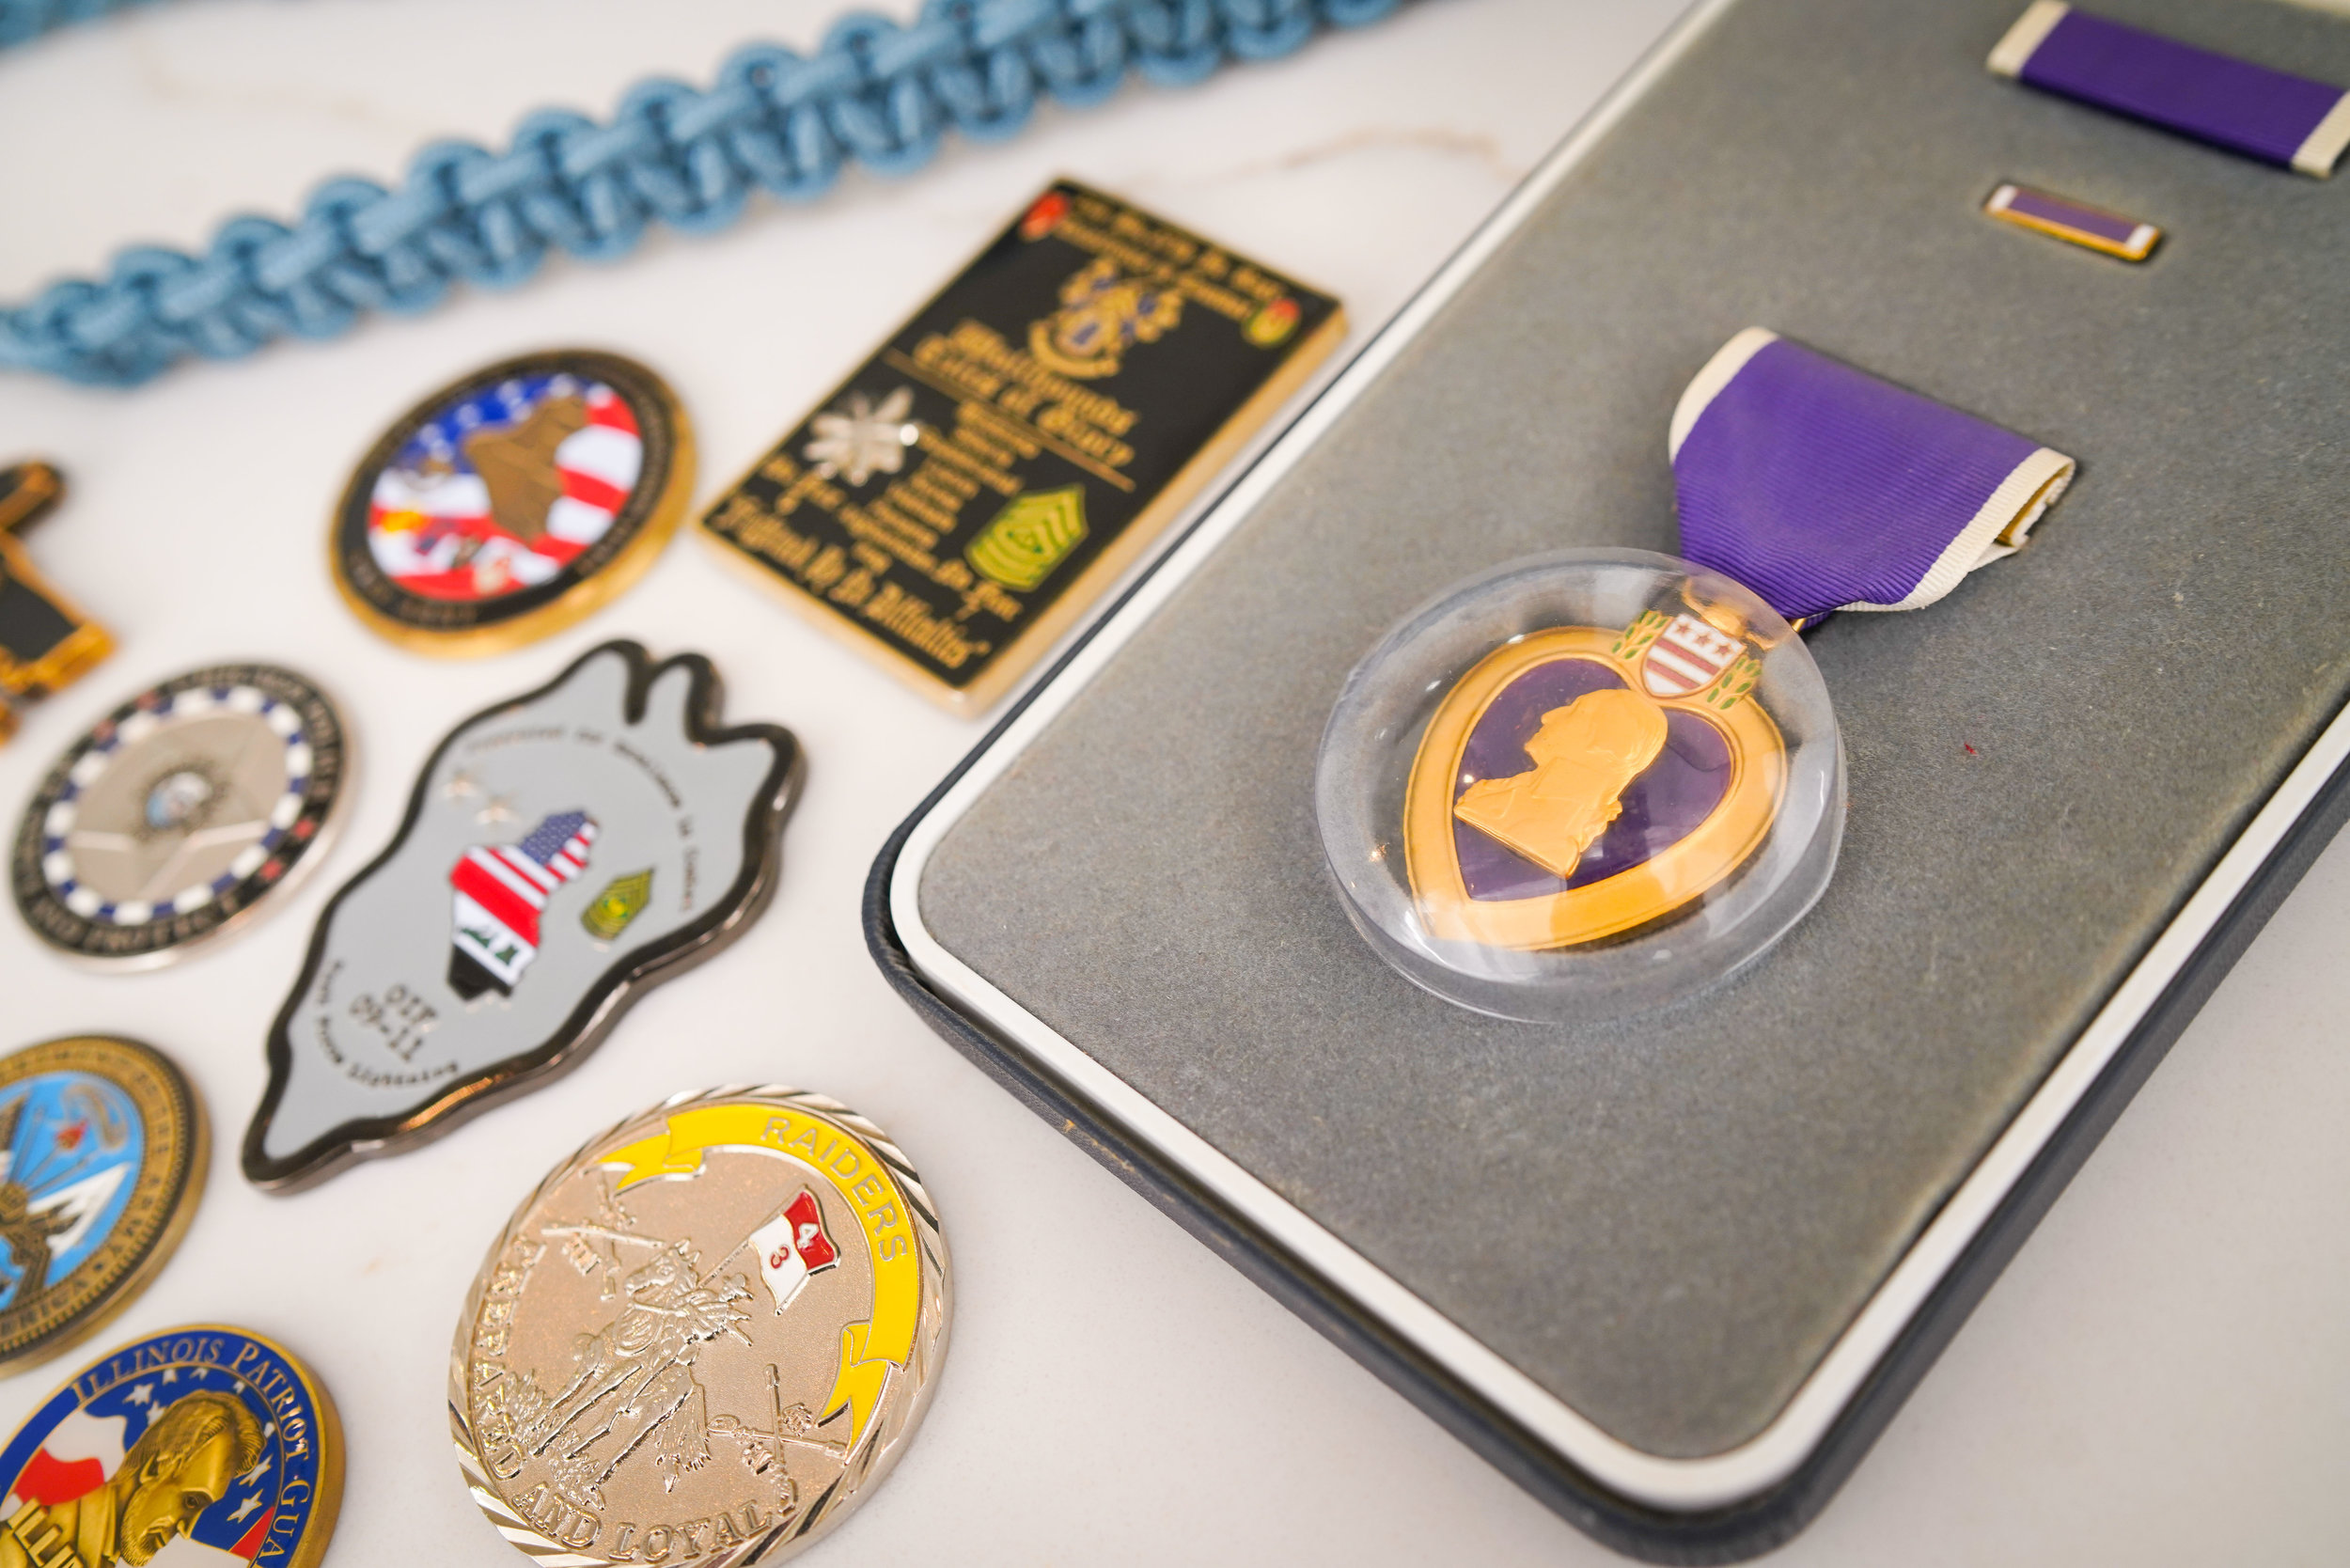 Purple Heart Award, Military Coins, and Infantry Blue Cord